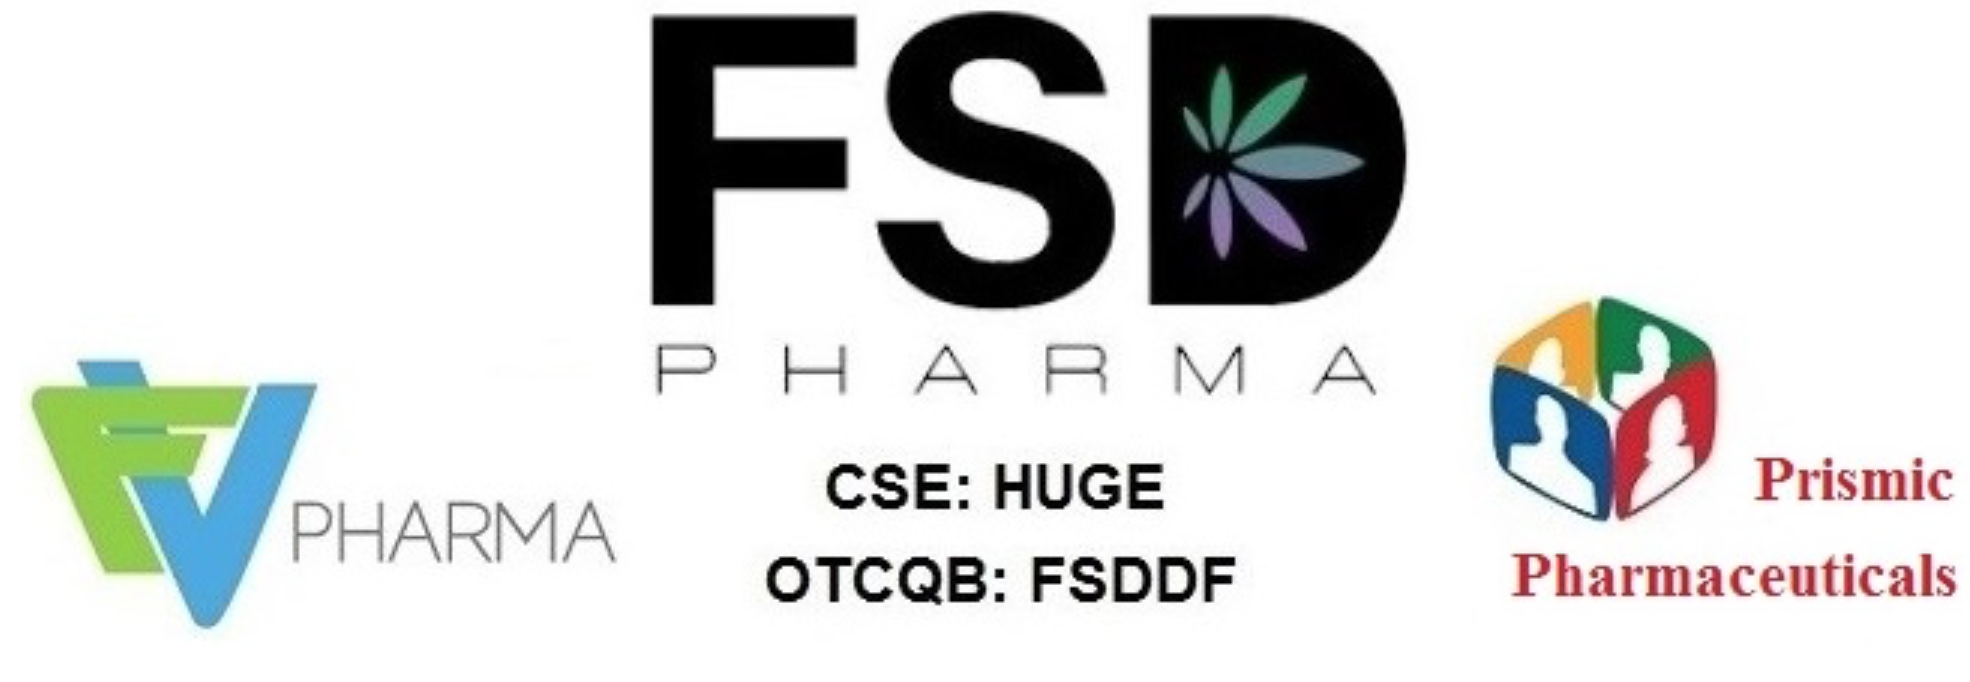 HUGE.CN: FSD Pharma to Initiate a Phase 1 clinical trial of PP-101 micro-PEA during 1Q 2020